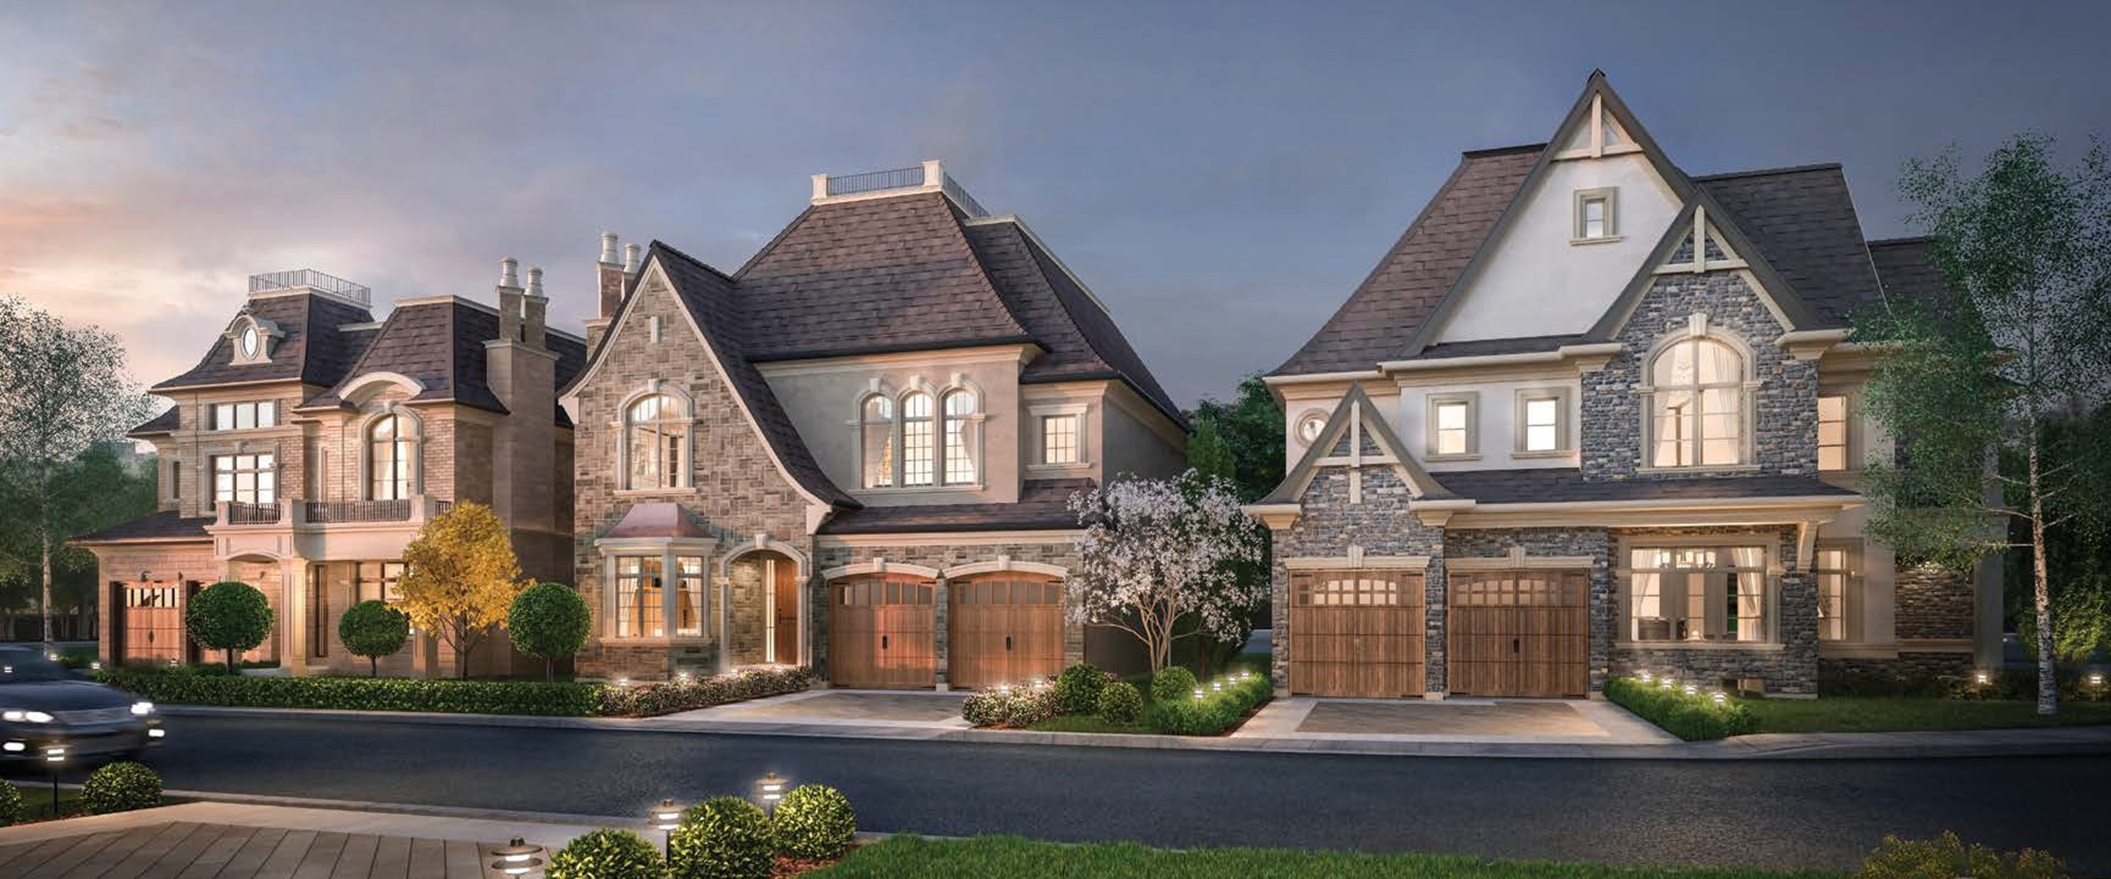 New houses in vaughan